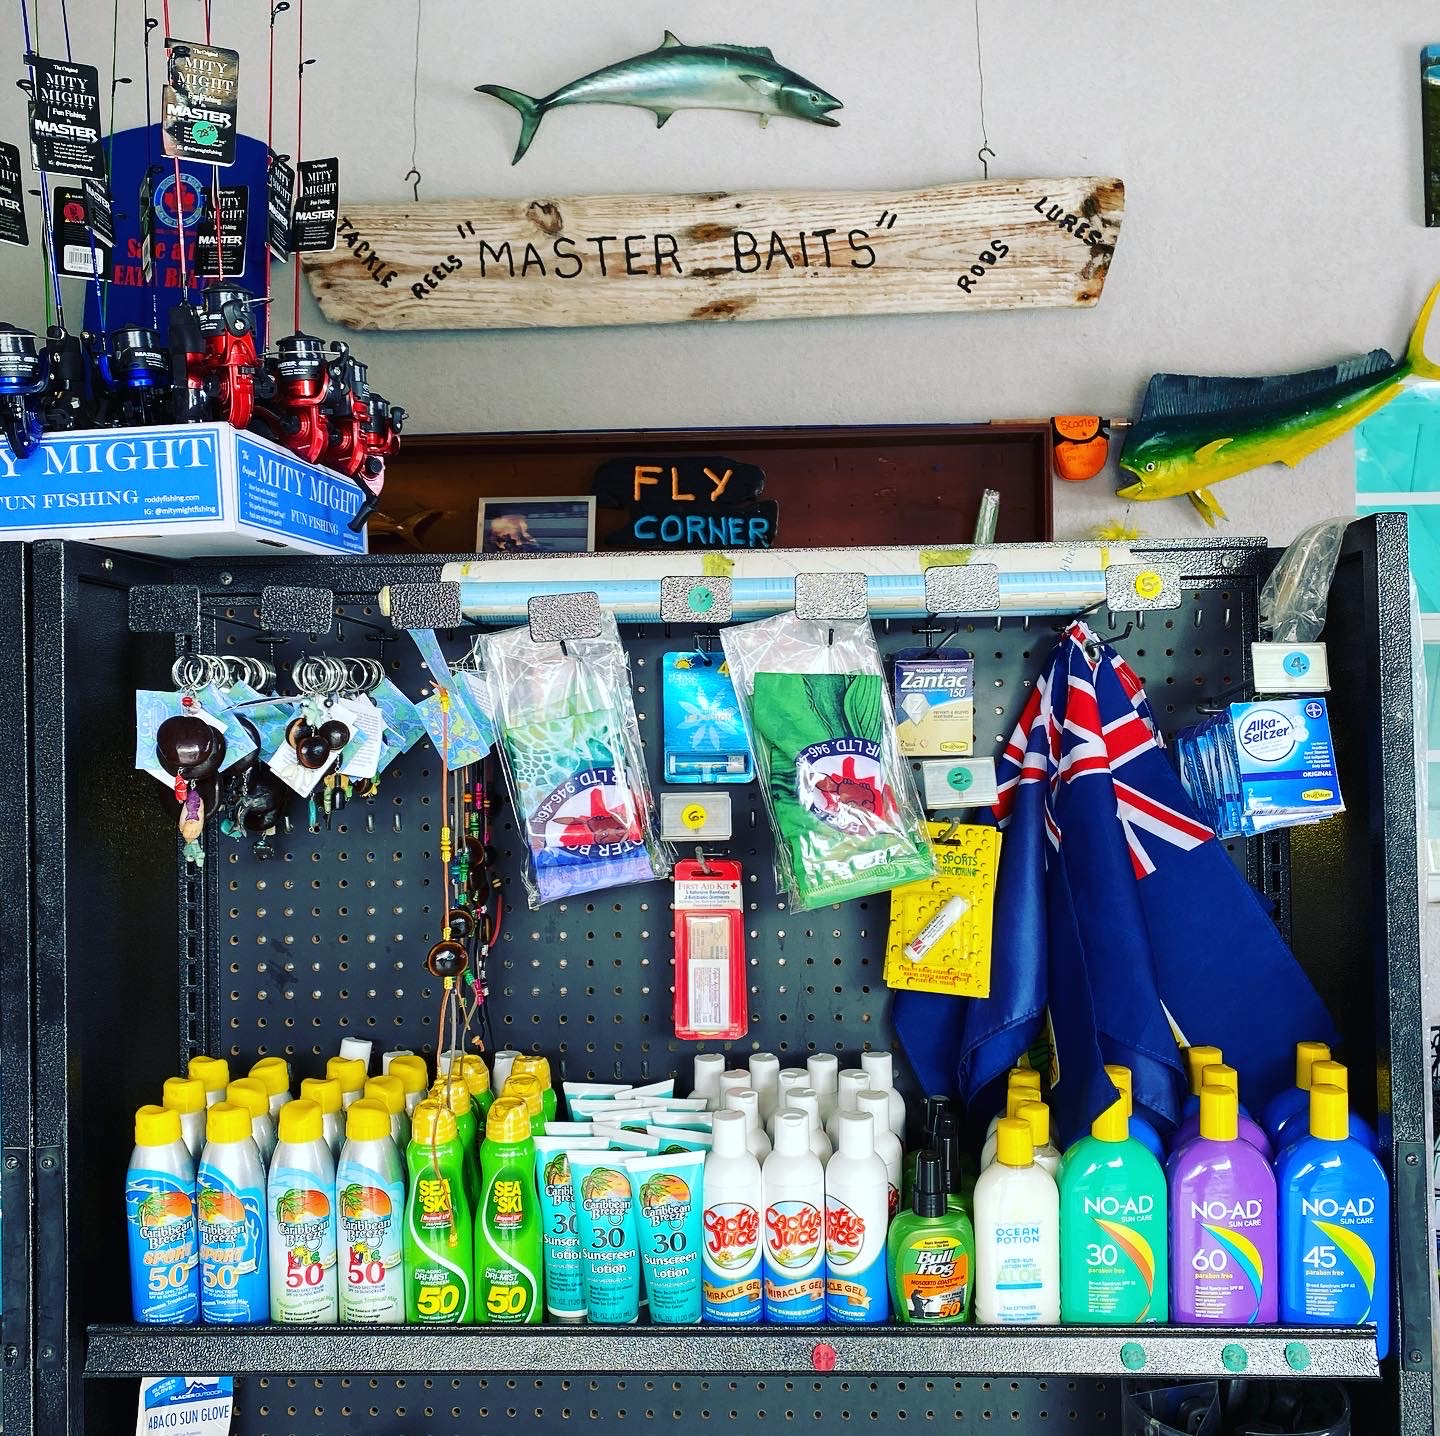 fly poles key chains sun block and the TCI flag for sale at Master Baits Tackle and Fishing shop in Scooter Bobs car rental office in Turtle Cove Turks and Caicos Islands